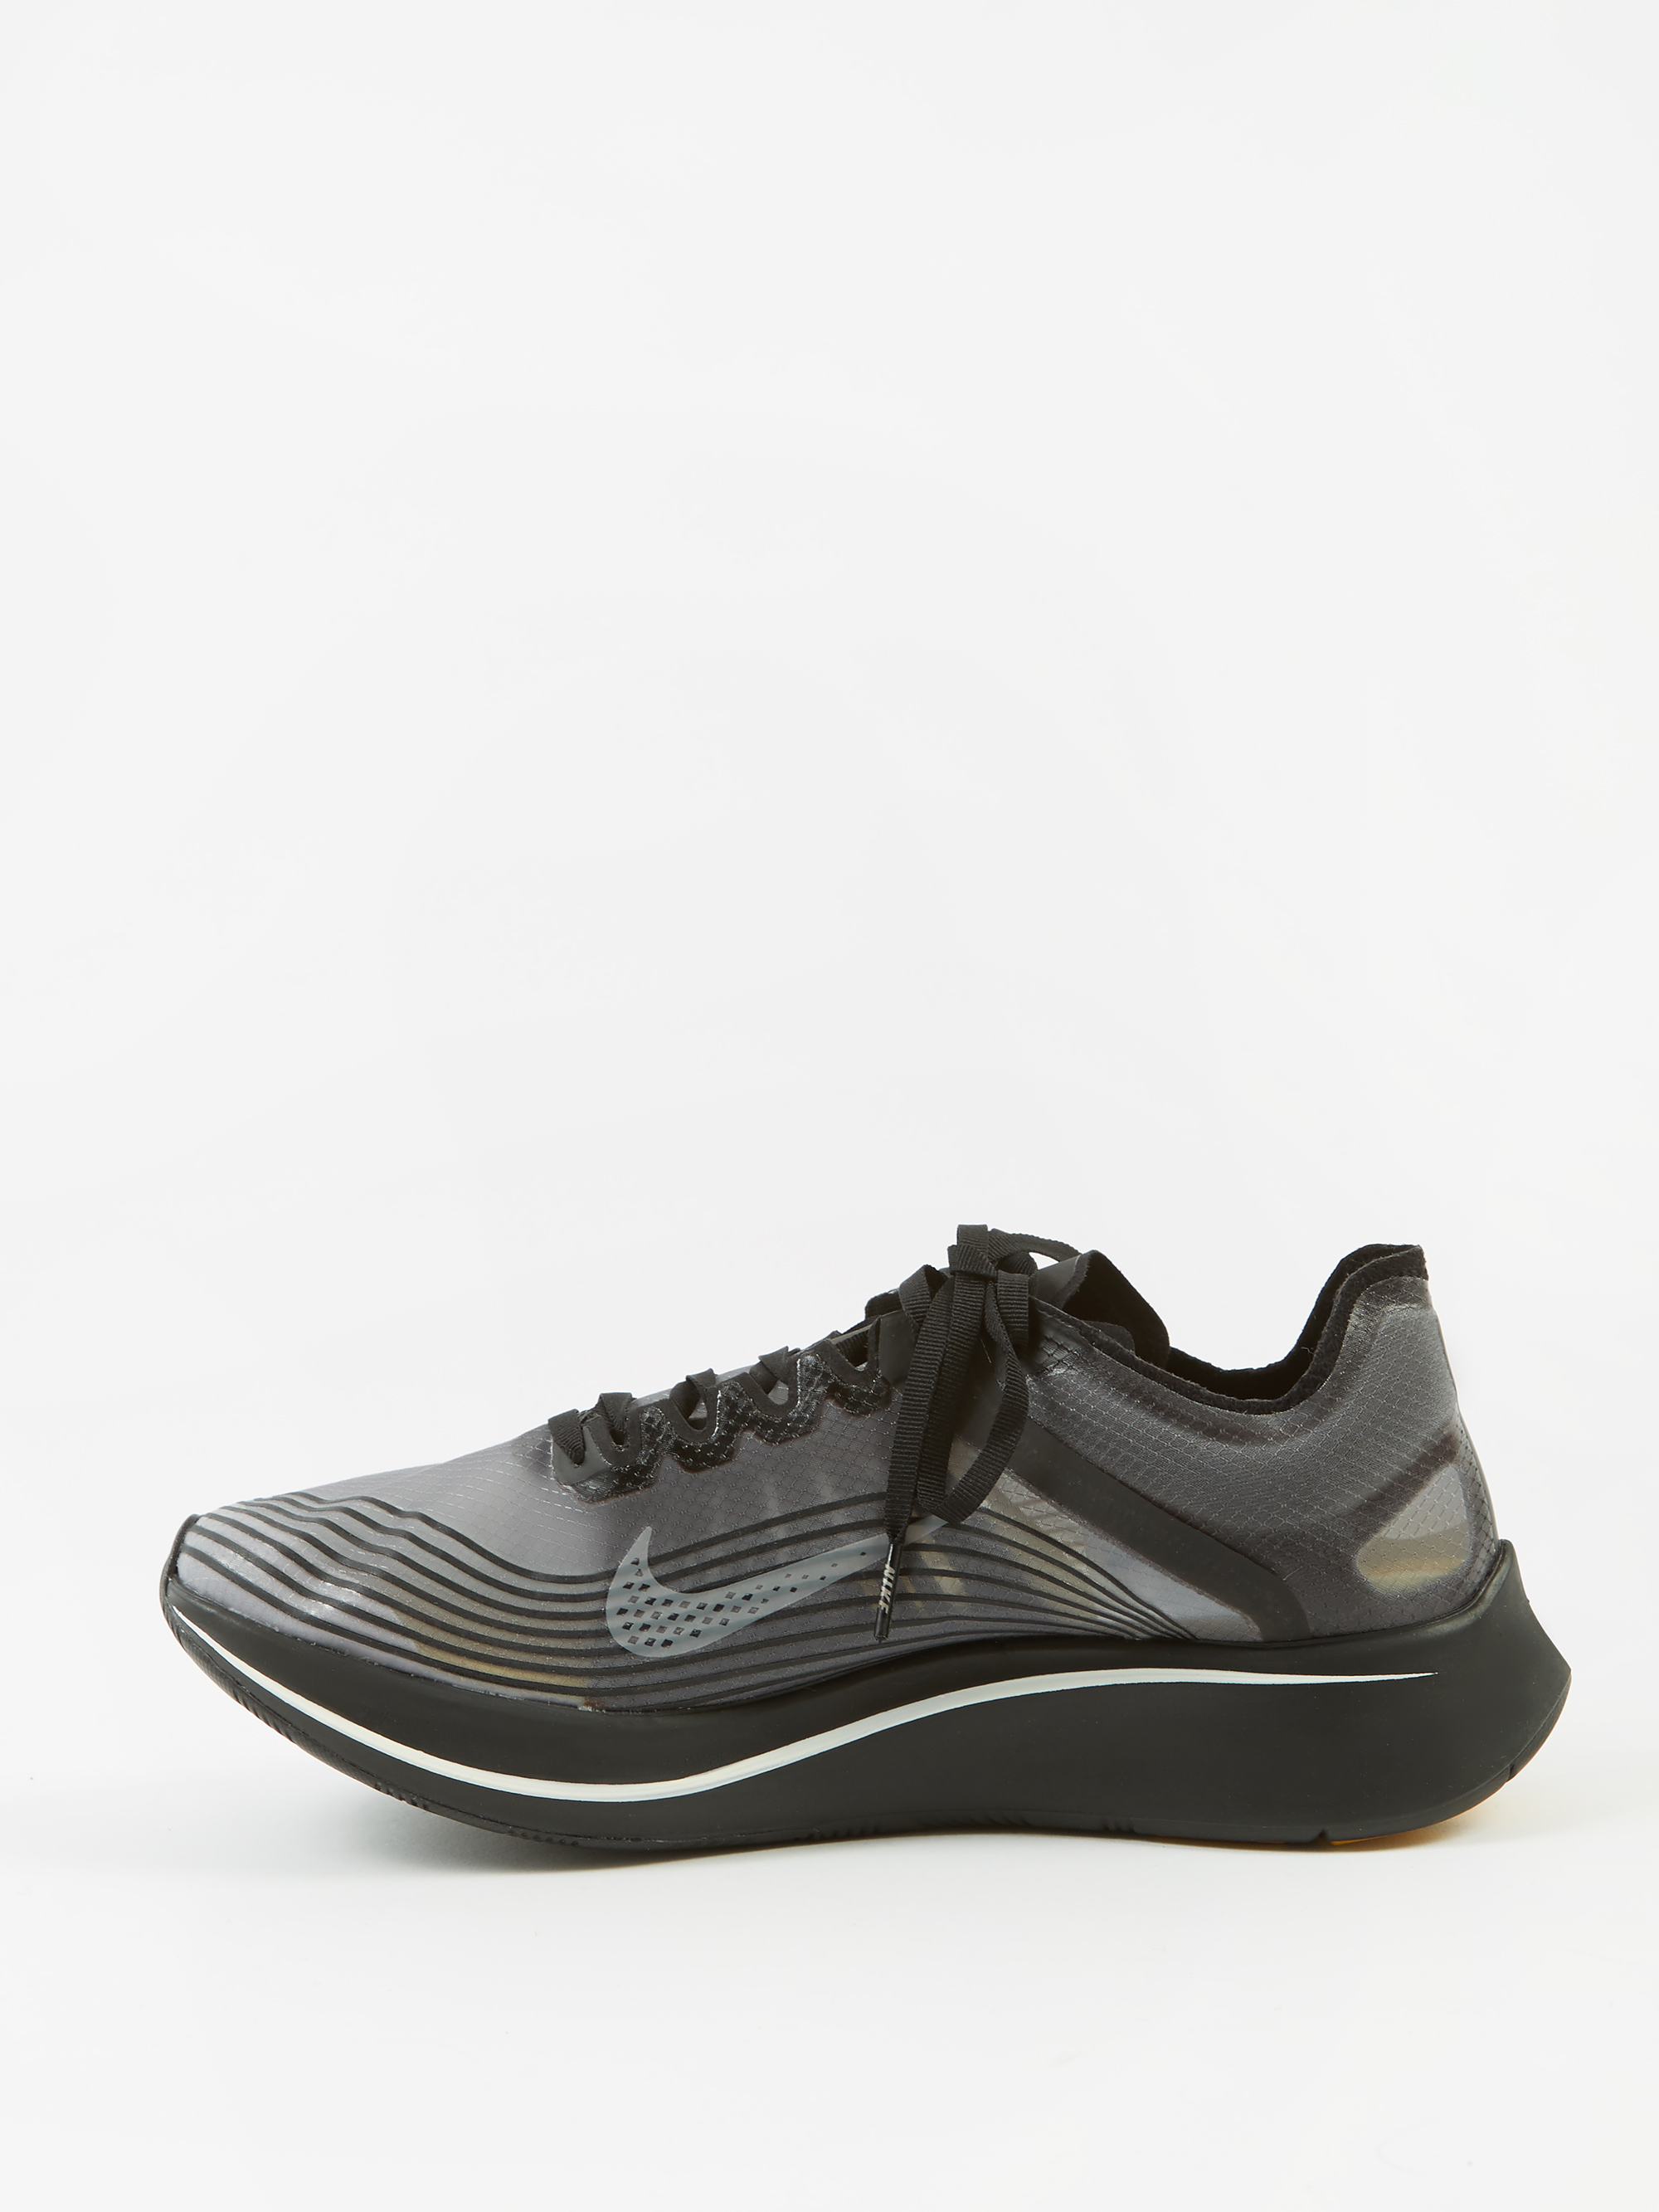 f180bfc7f428 Nike Zoom Fly Gyakusou - Black Sail-Mineral Yellow-Black